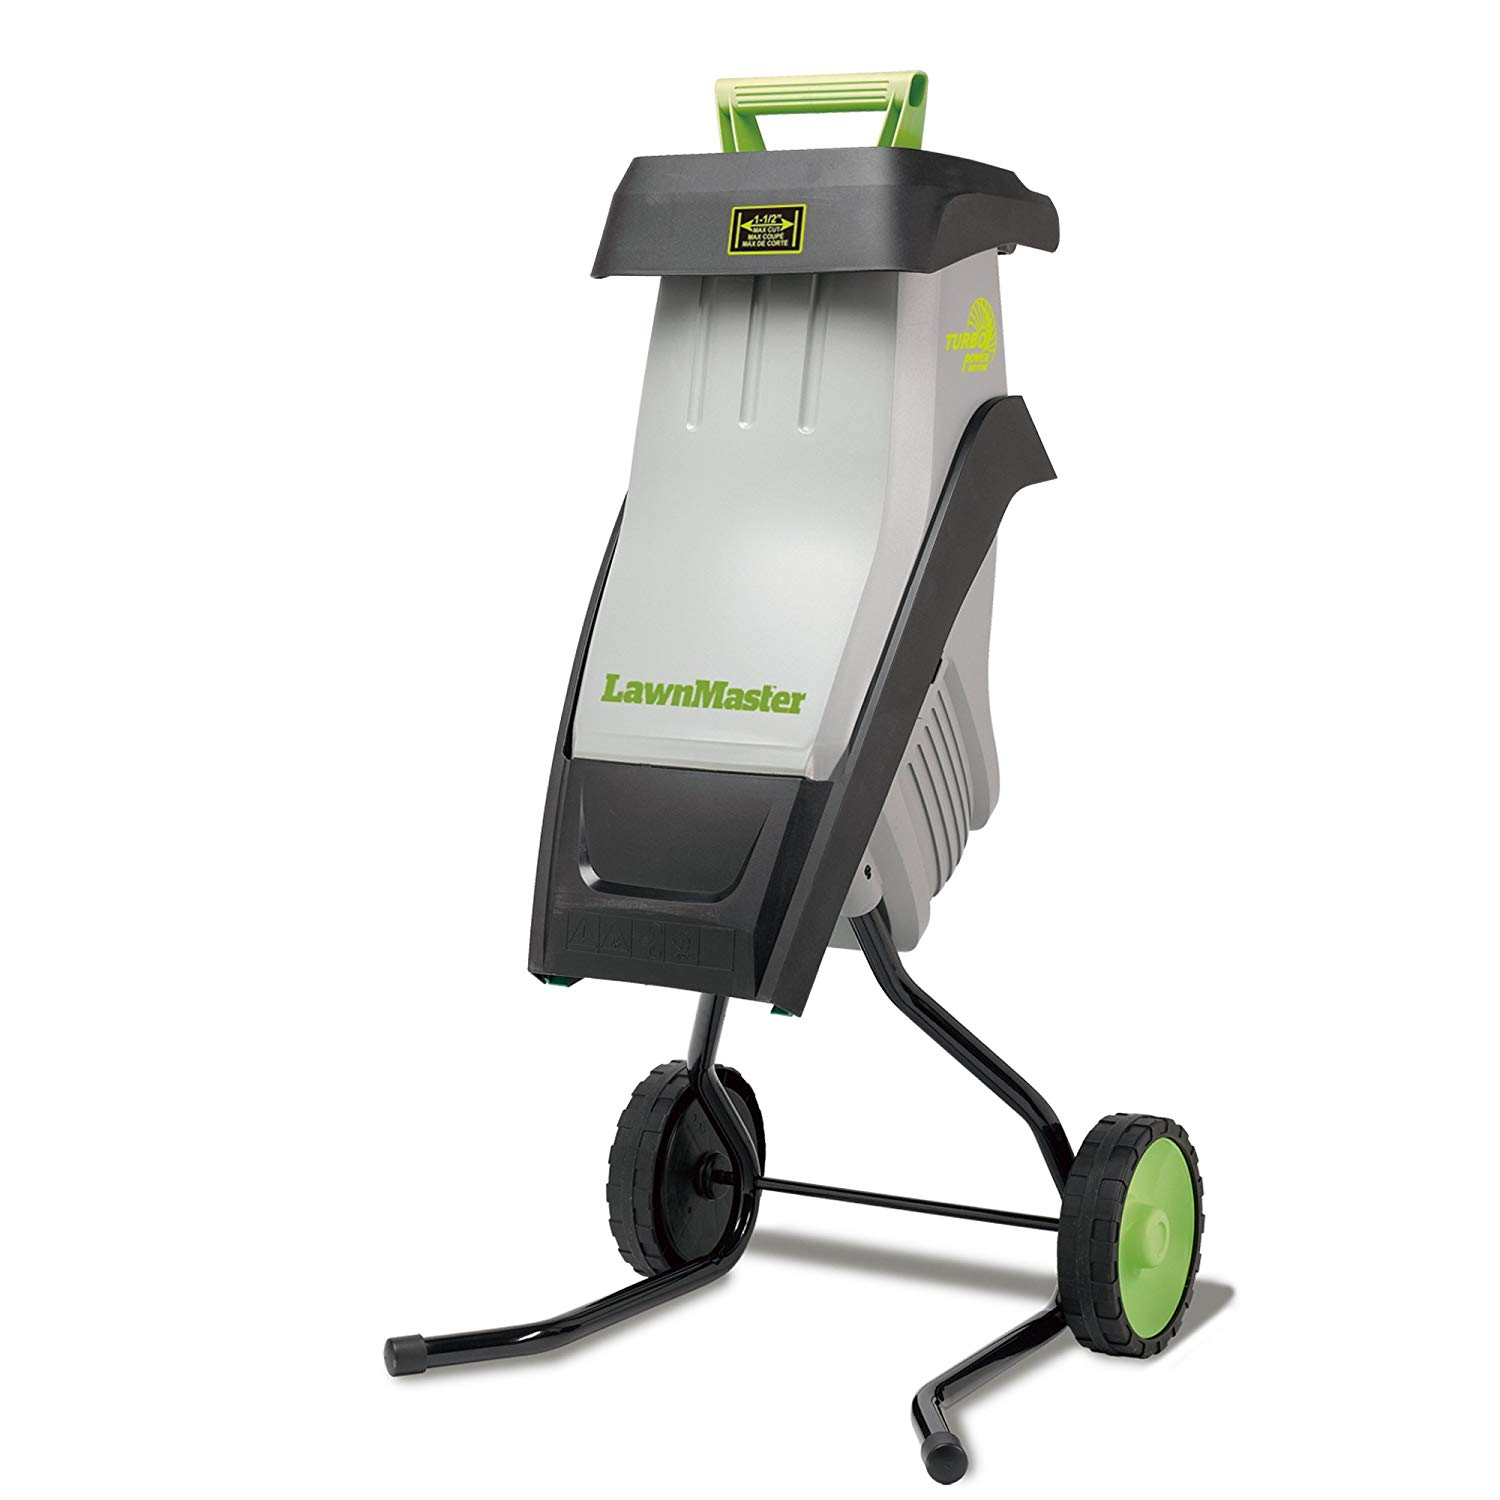 LawnMaster FD1501 Electric Chipper Shredder